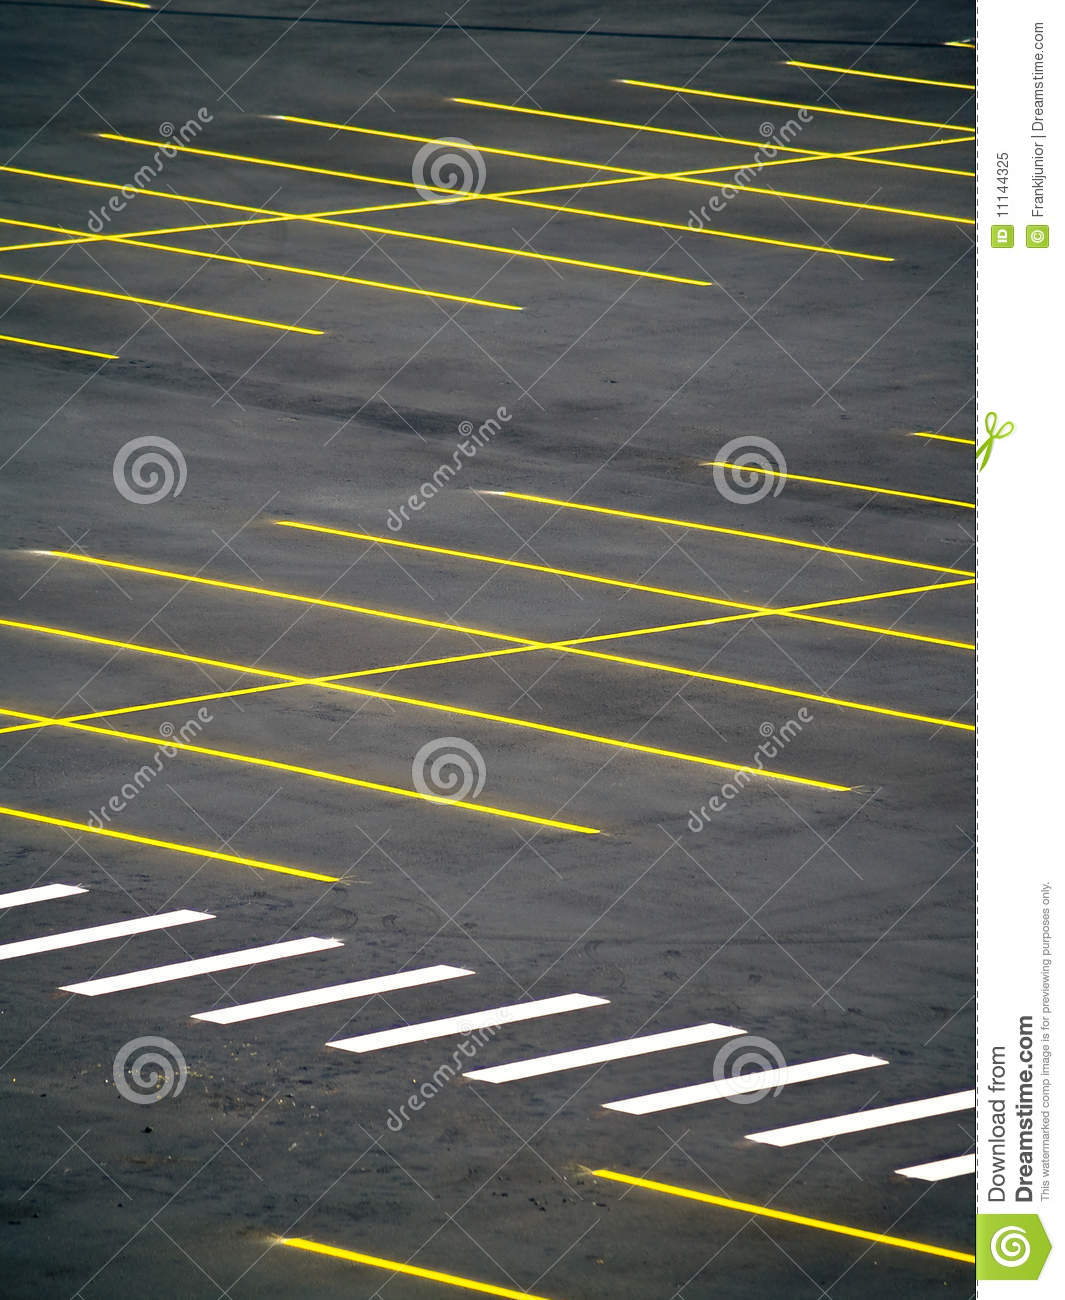 Grunge Empty Parking Lot Stock Image. Image Of Convenient